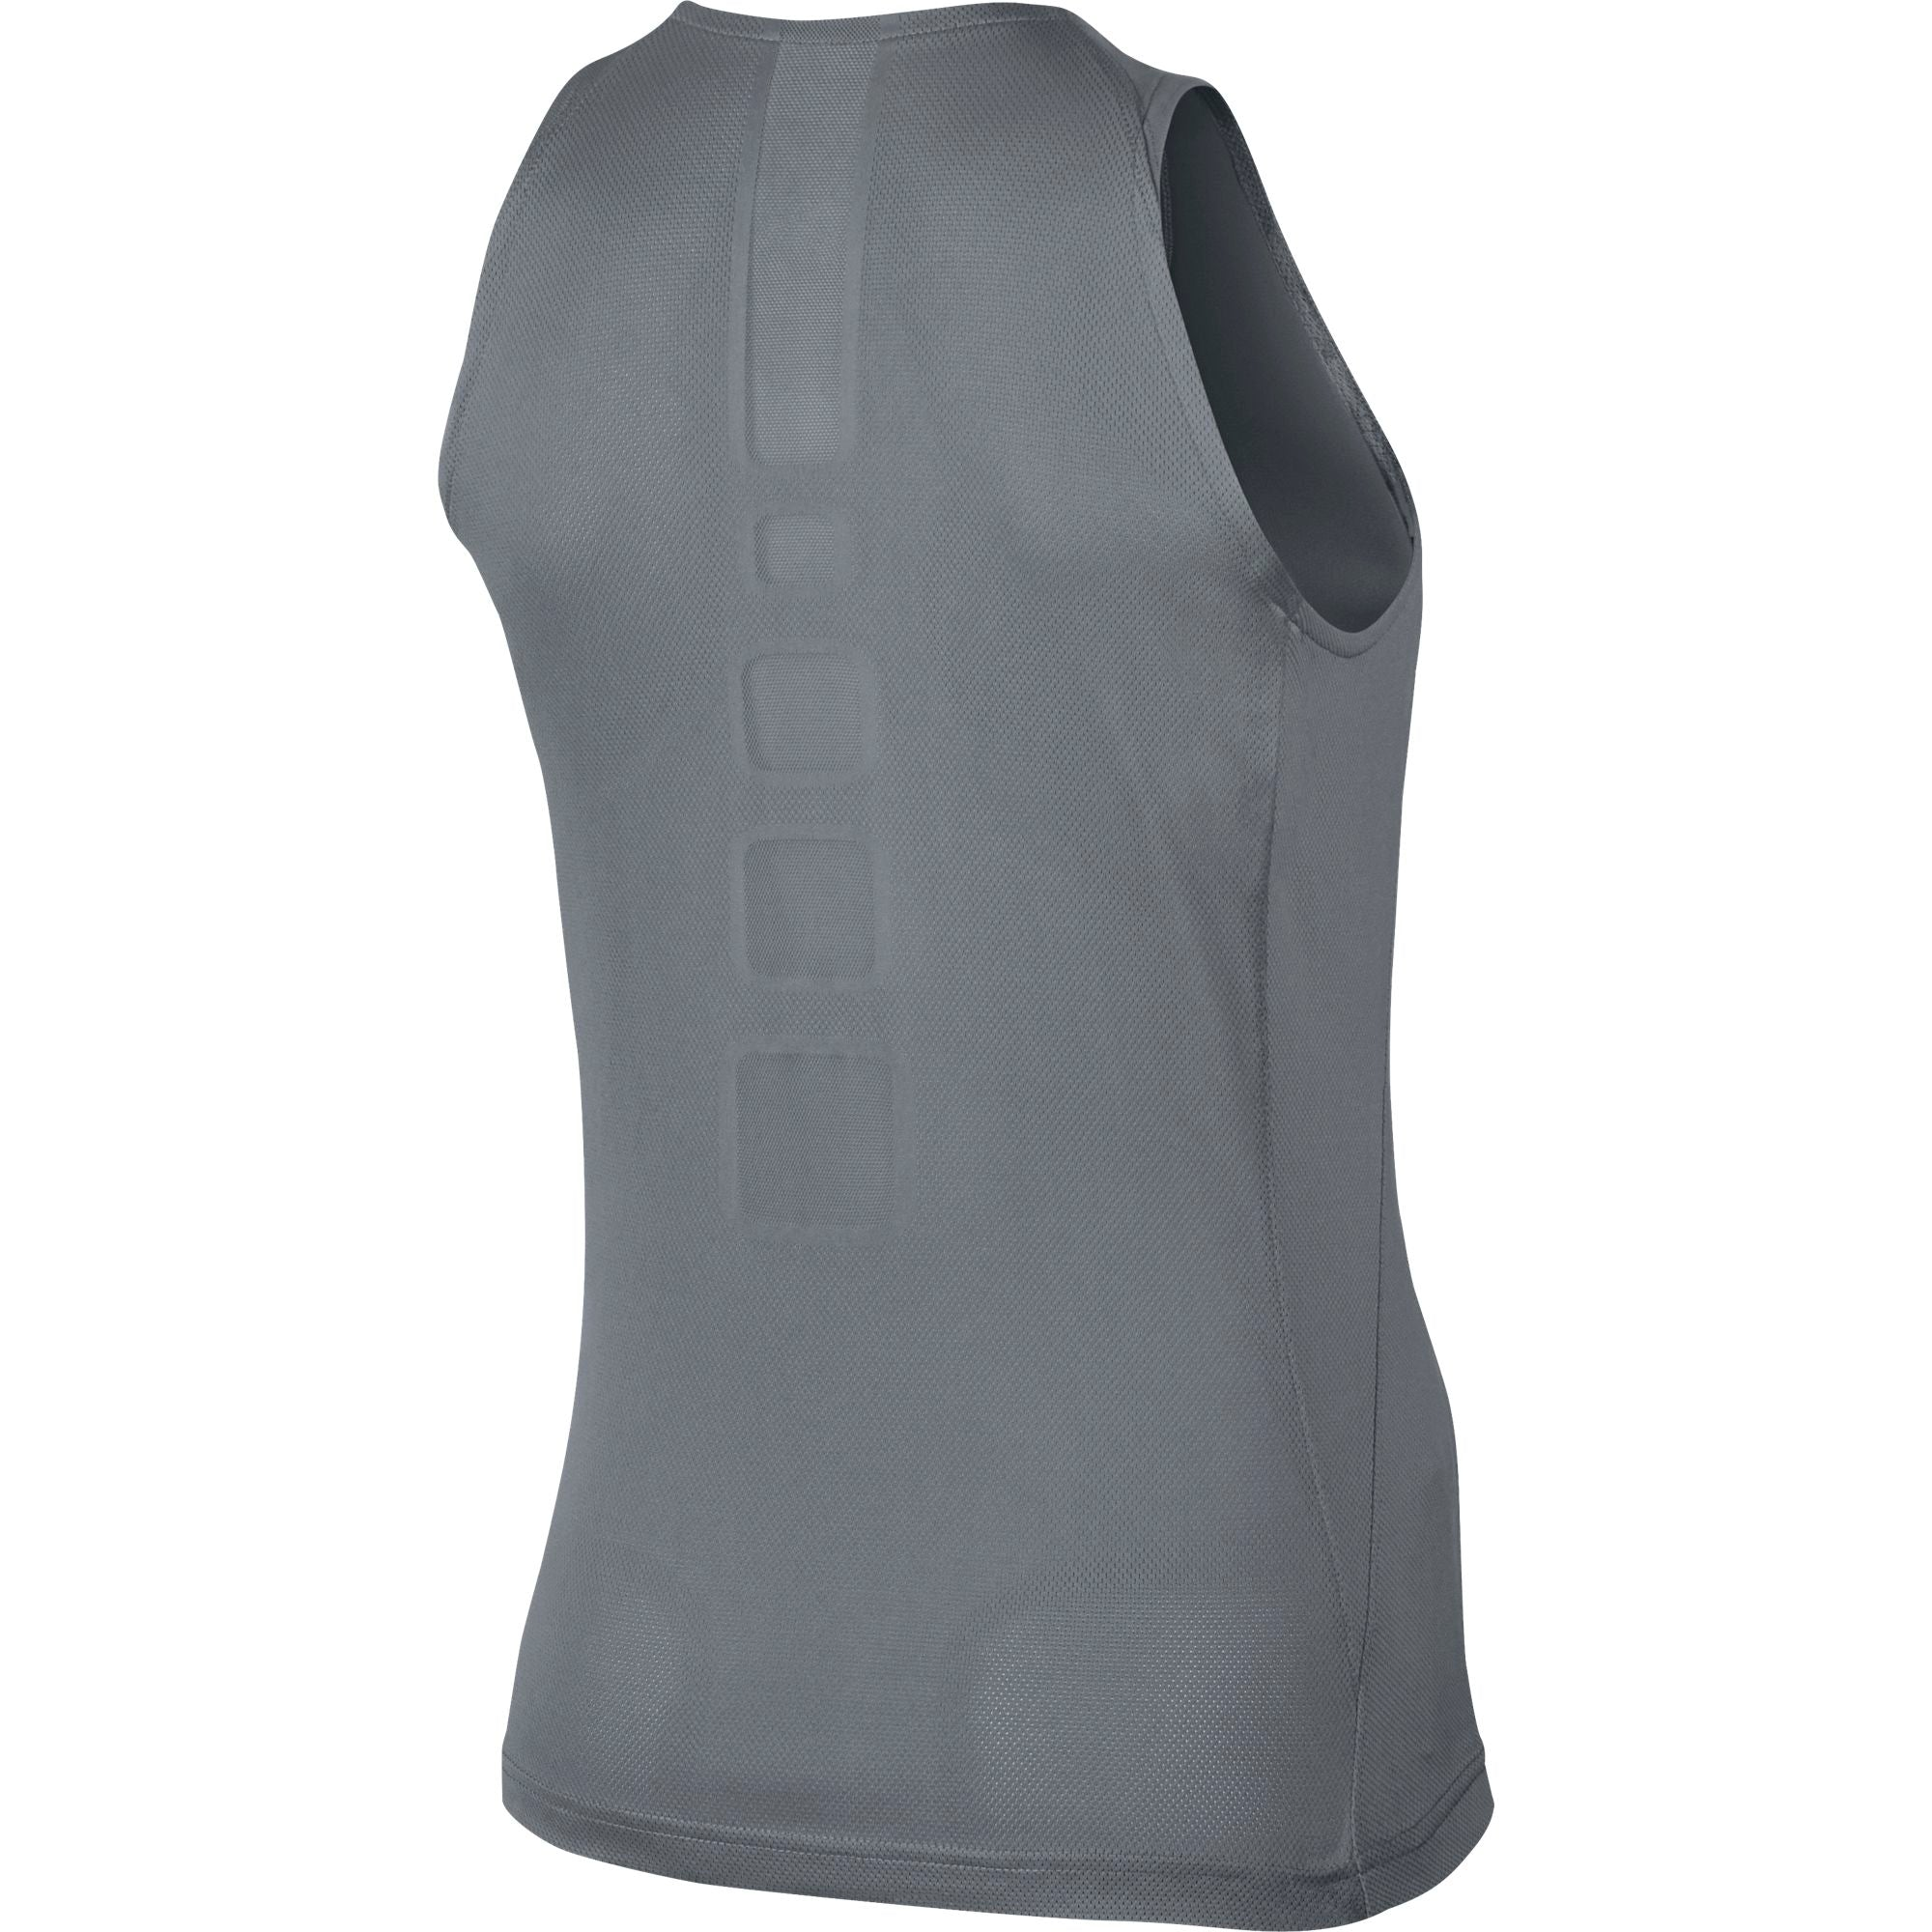 Nike Womens Elite Sleeveless Basketball Top - Cool Grey/Black